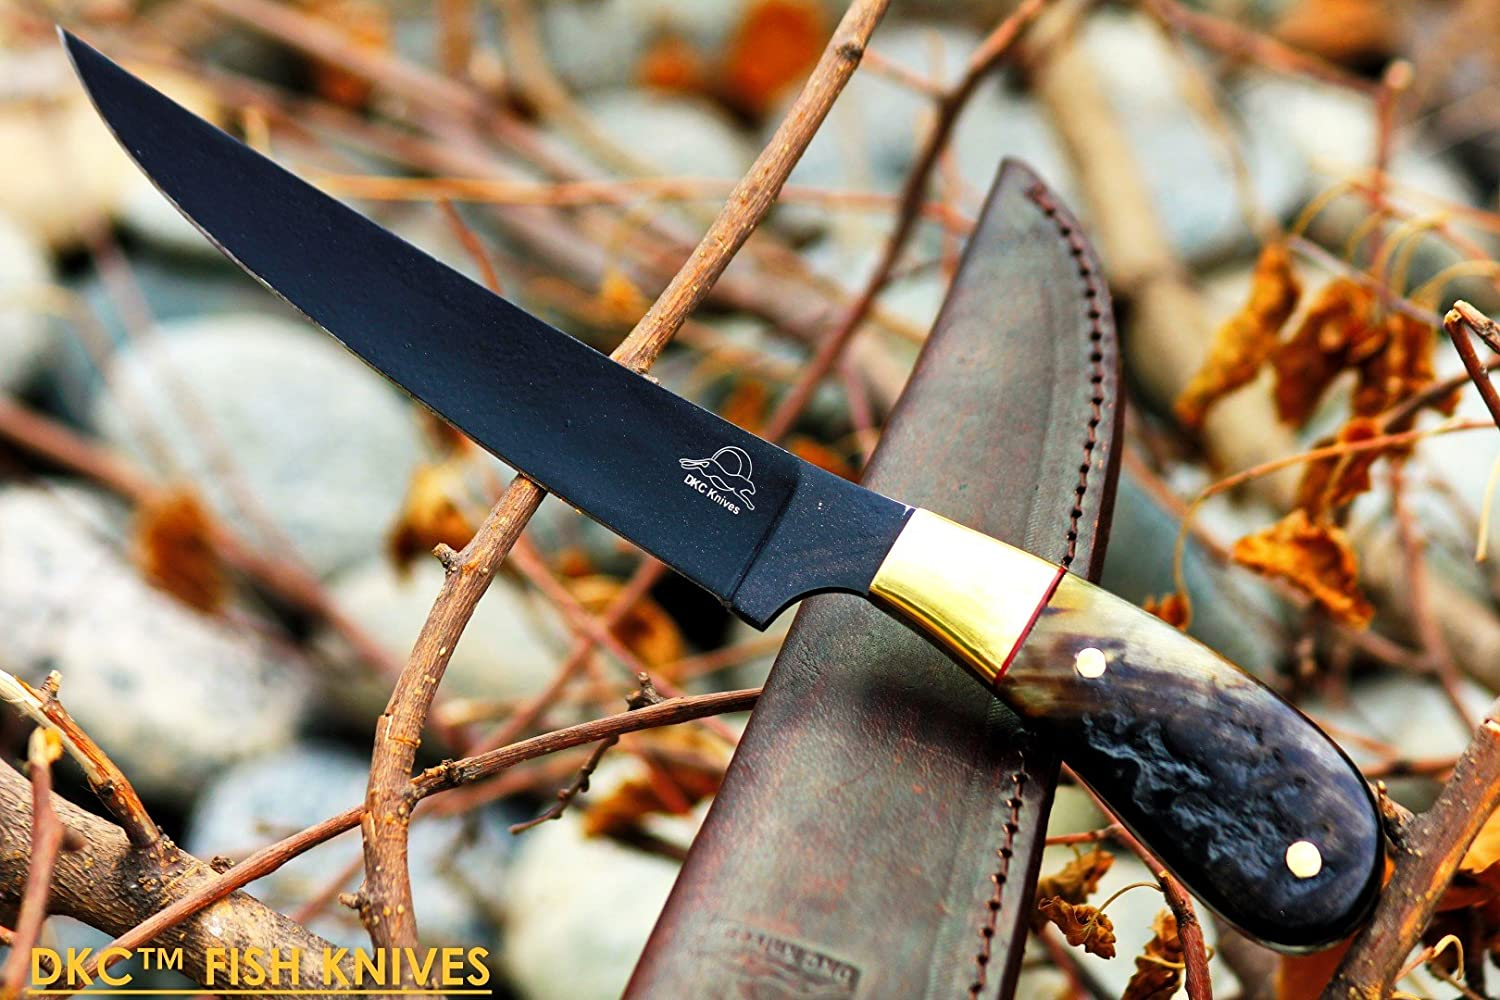 28 5 18 DKC-612 Black STAG Fishing Filet Knife Hunting Handmade Knife Fixed Blade 8.5 oz 11 Long 6 Blade